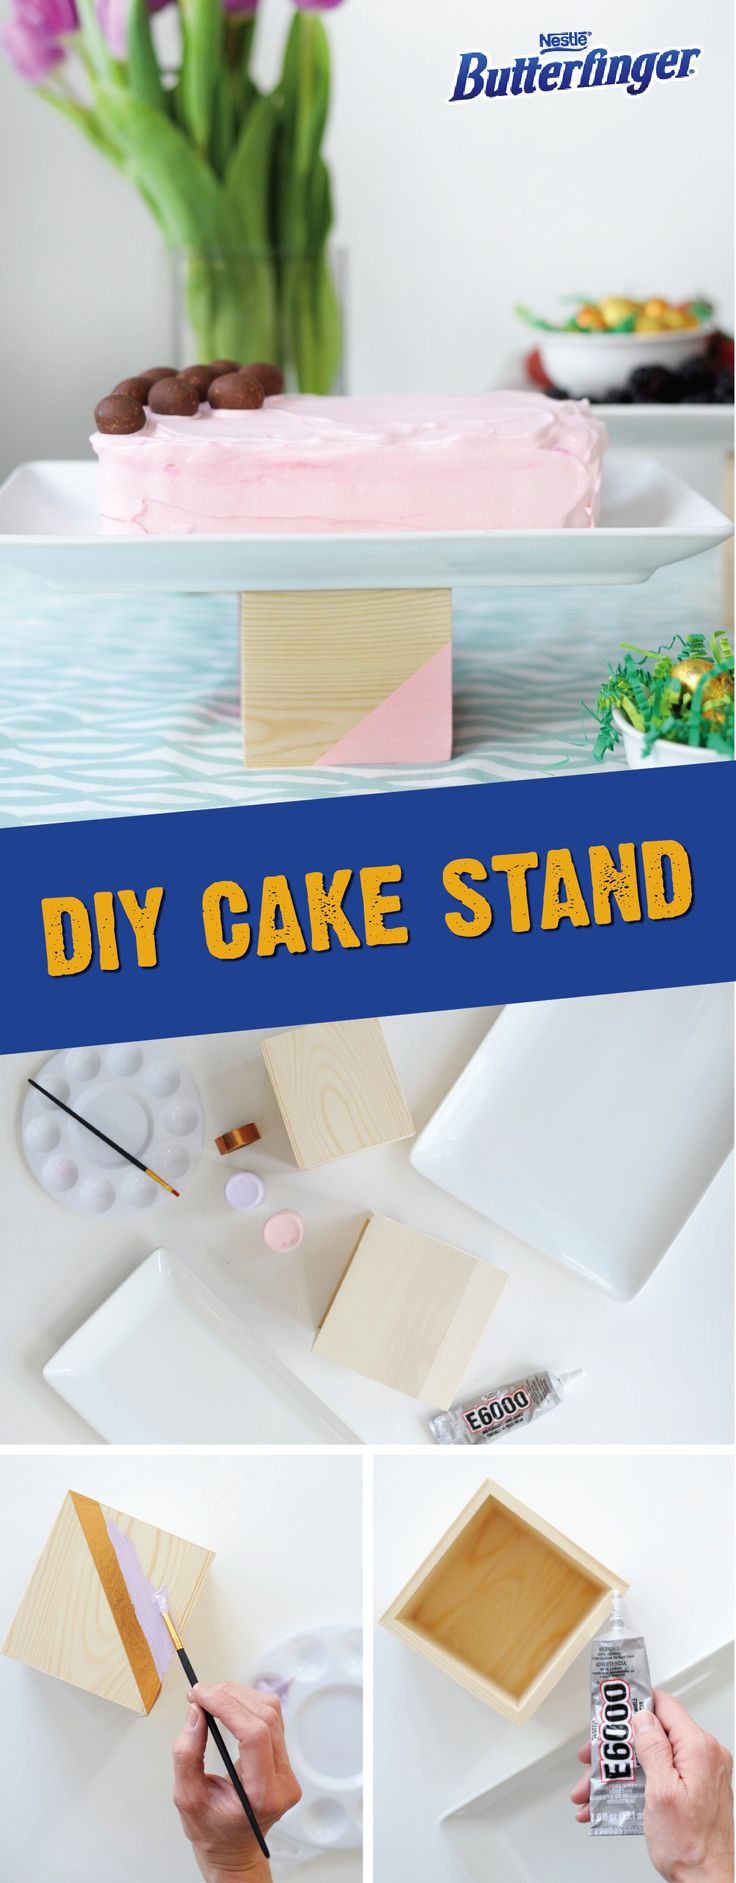 These versatile and easy-to-make DIY wood block cake plates are the perfect accessory for any occasion. Using acrylic paint, decorate a wooden block or vase, and glue it to a round or rectangular serving plate. Serve your friends and family food on these unique and creative table decorations at your next party. Click here to learn more about this fun entertainment idea.